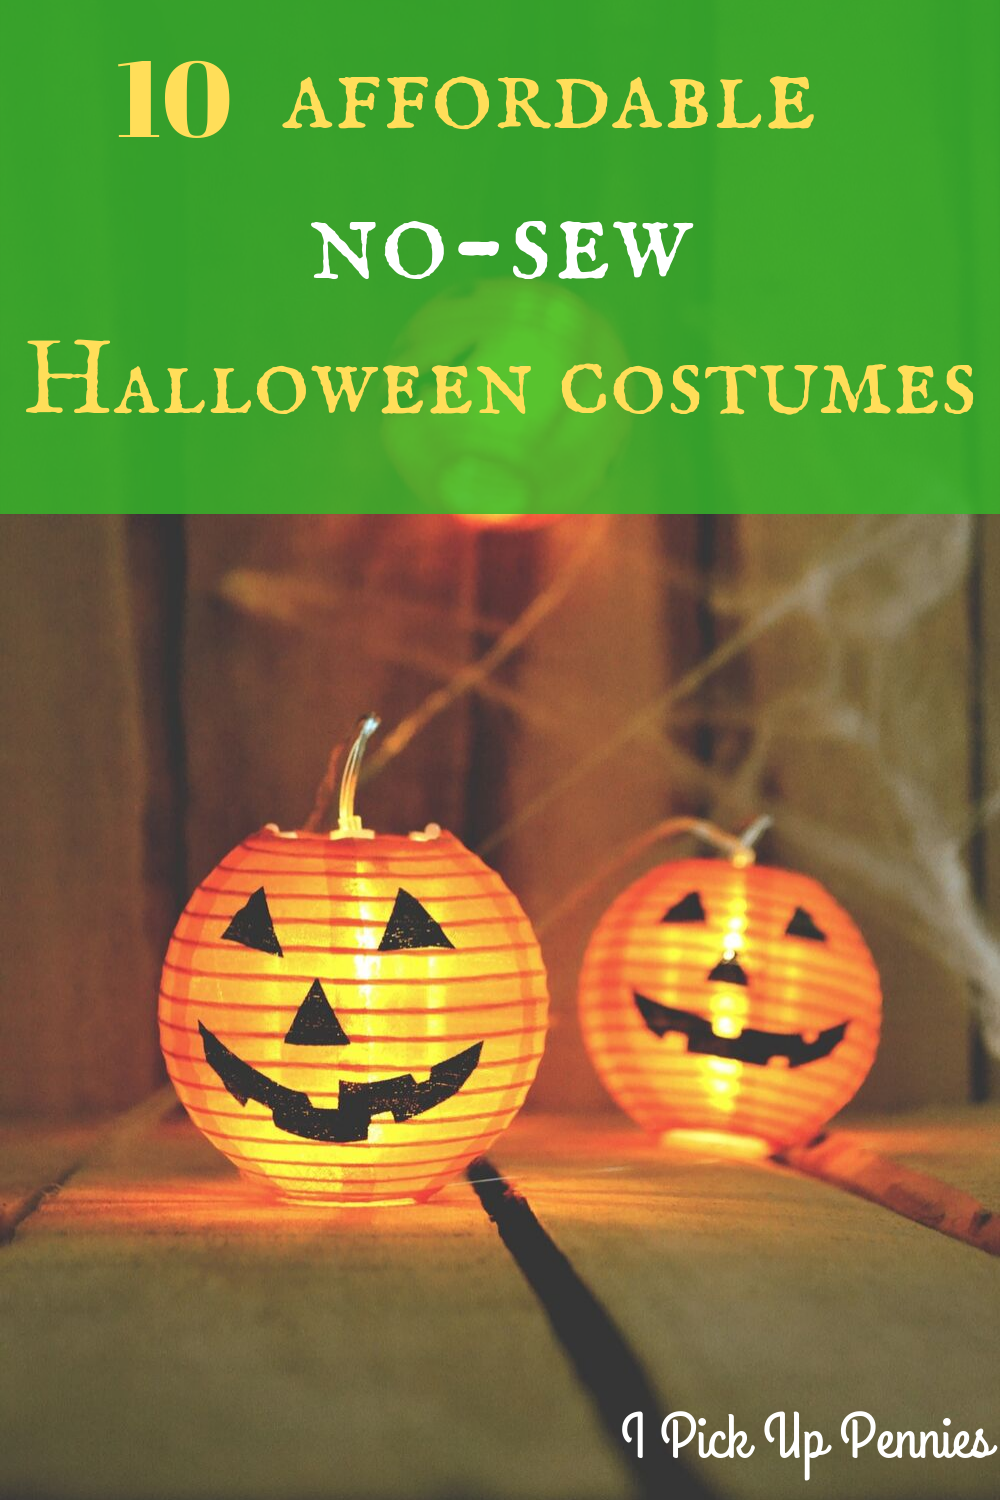 Great ideas for cheap Halloween costumes! No sewing either!